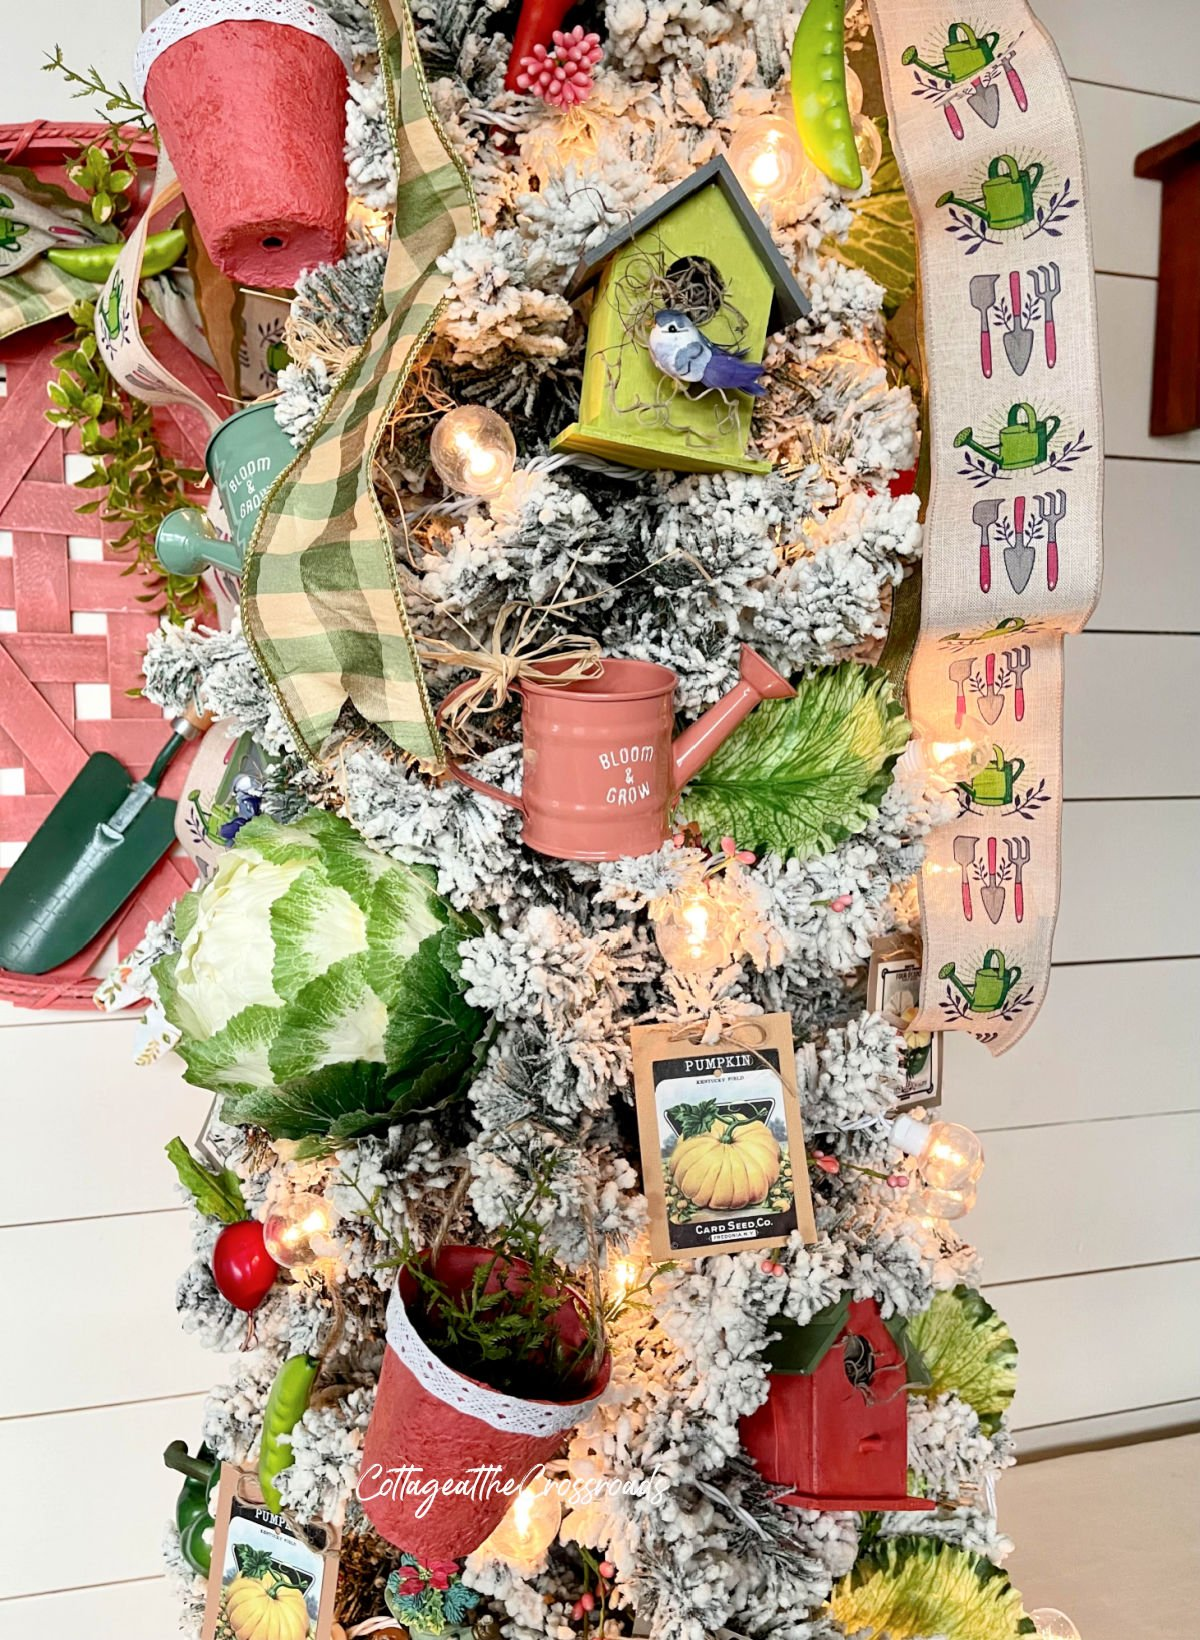 watering can ornament on garden tree